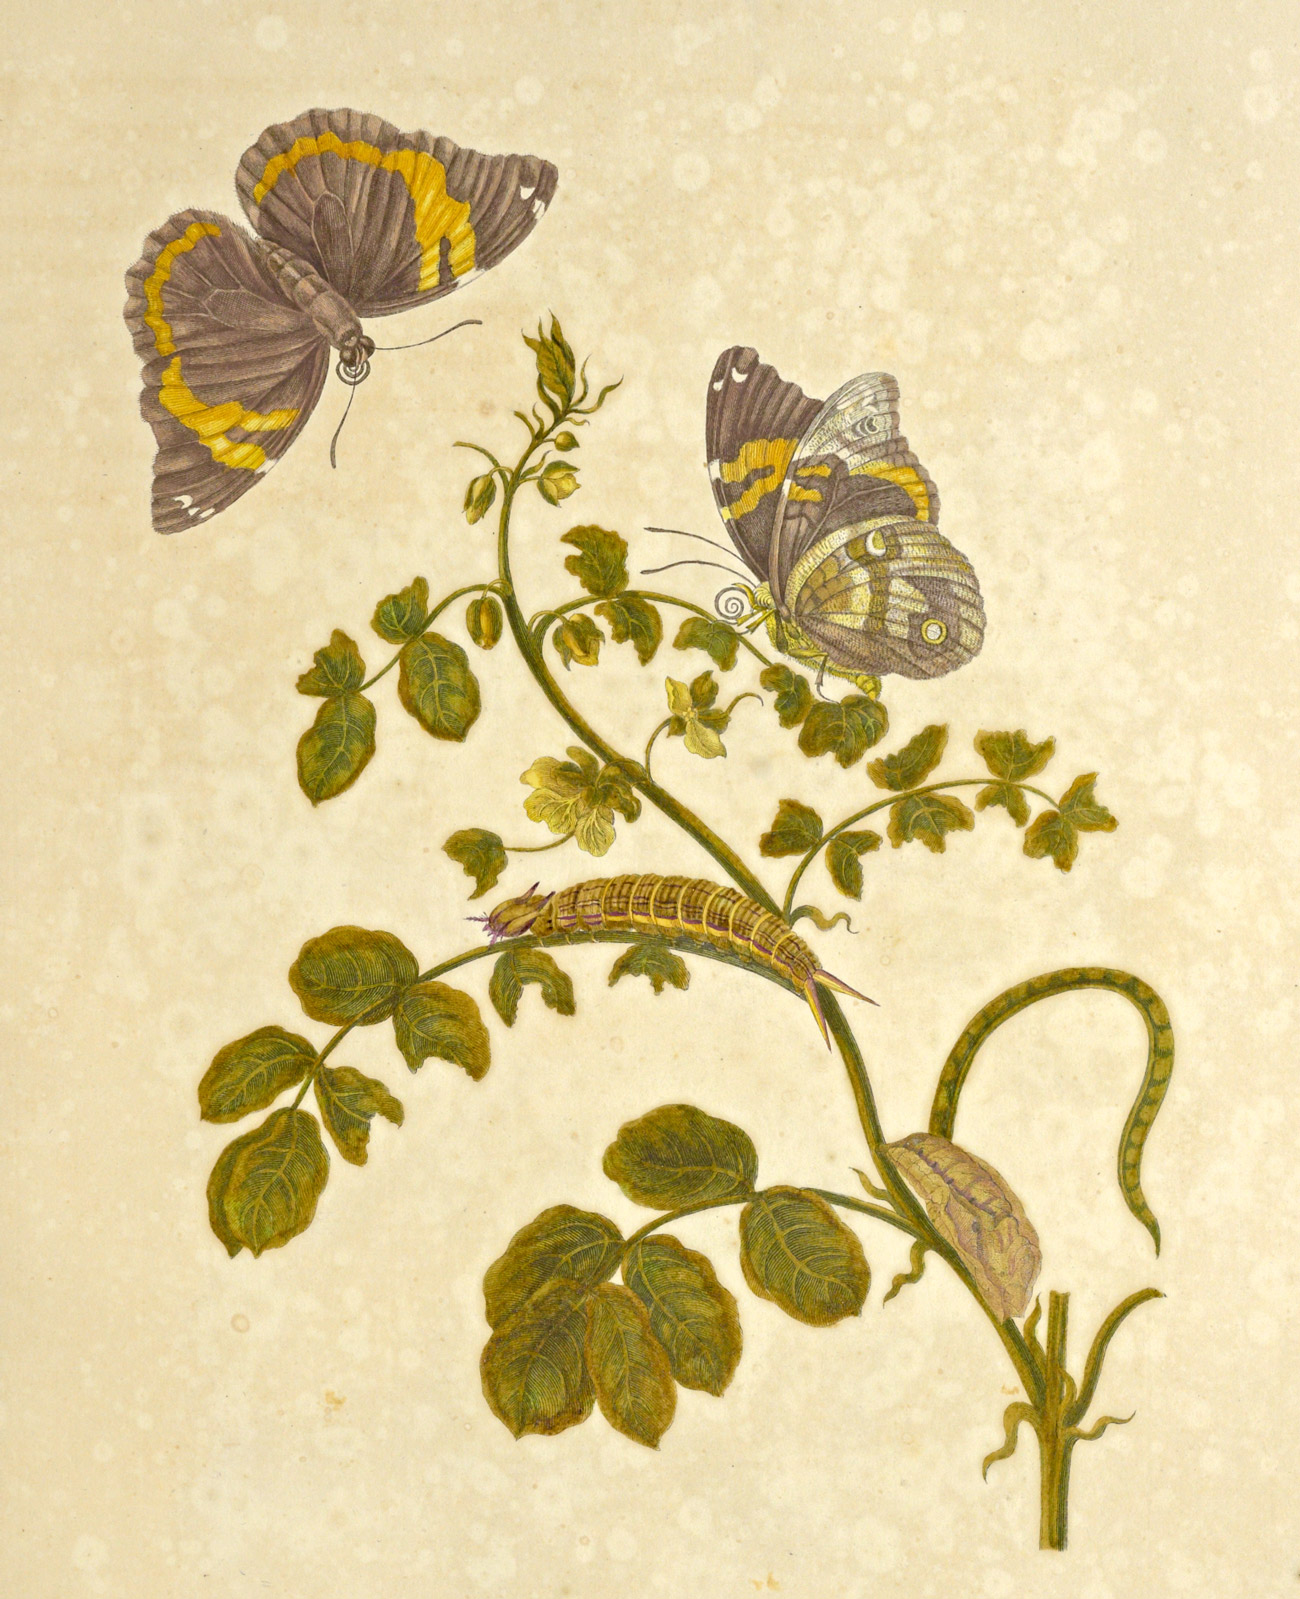 A branch with flowers hosts the various stages of a butterfly from caterpillar to pupa to butterfly